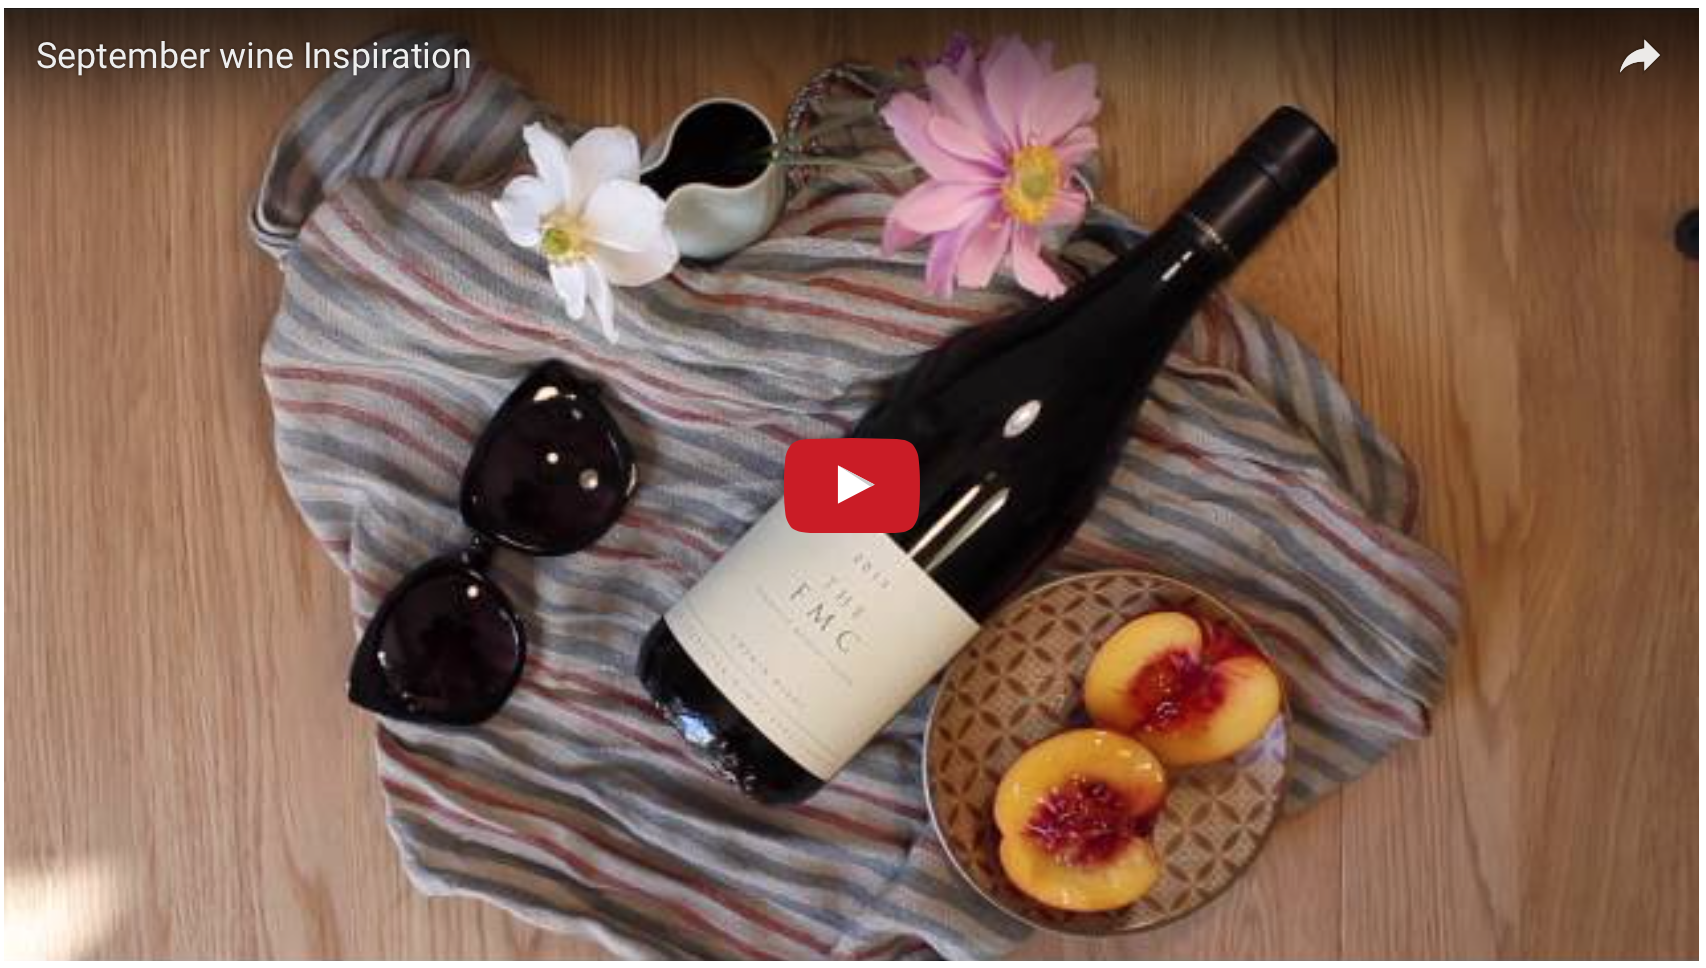 September wine inspiration video